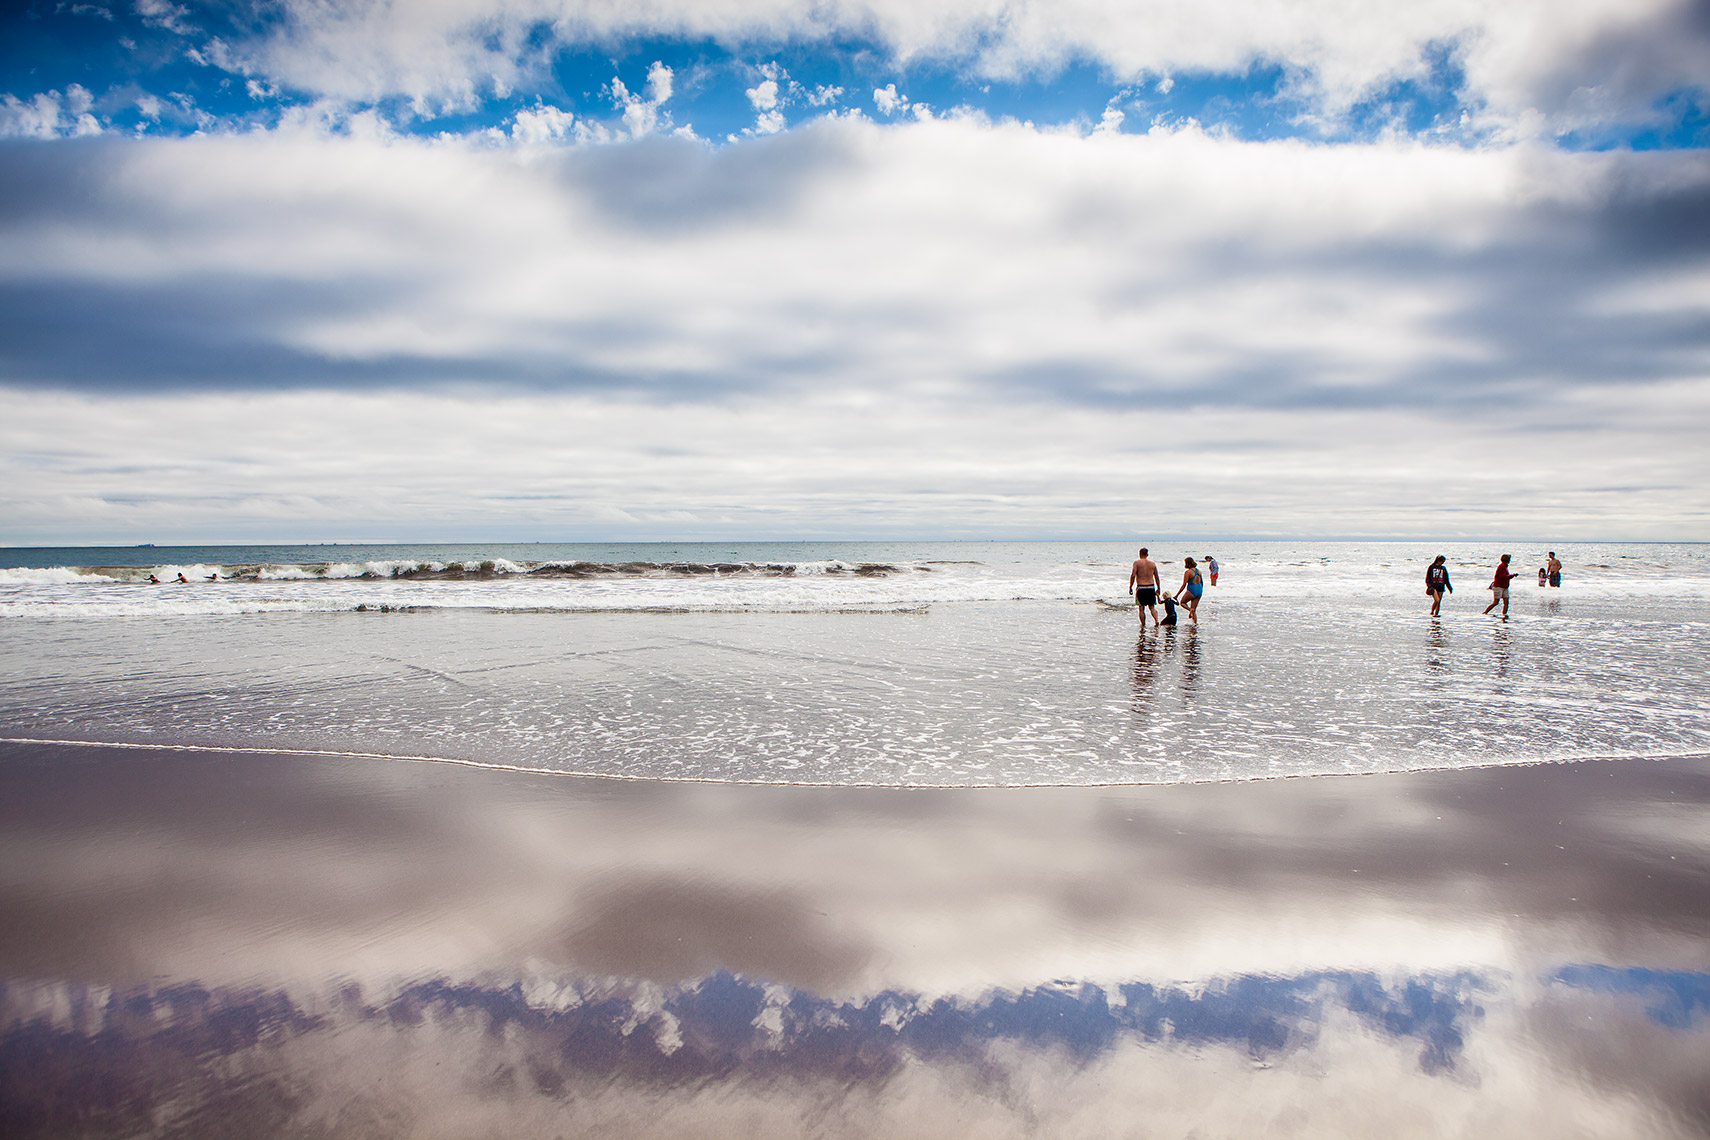 People at Stinson Beach, California